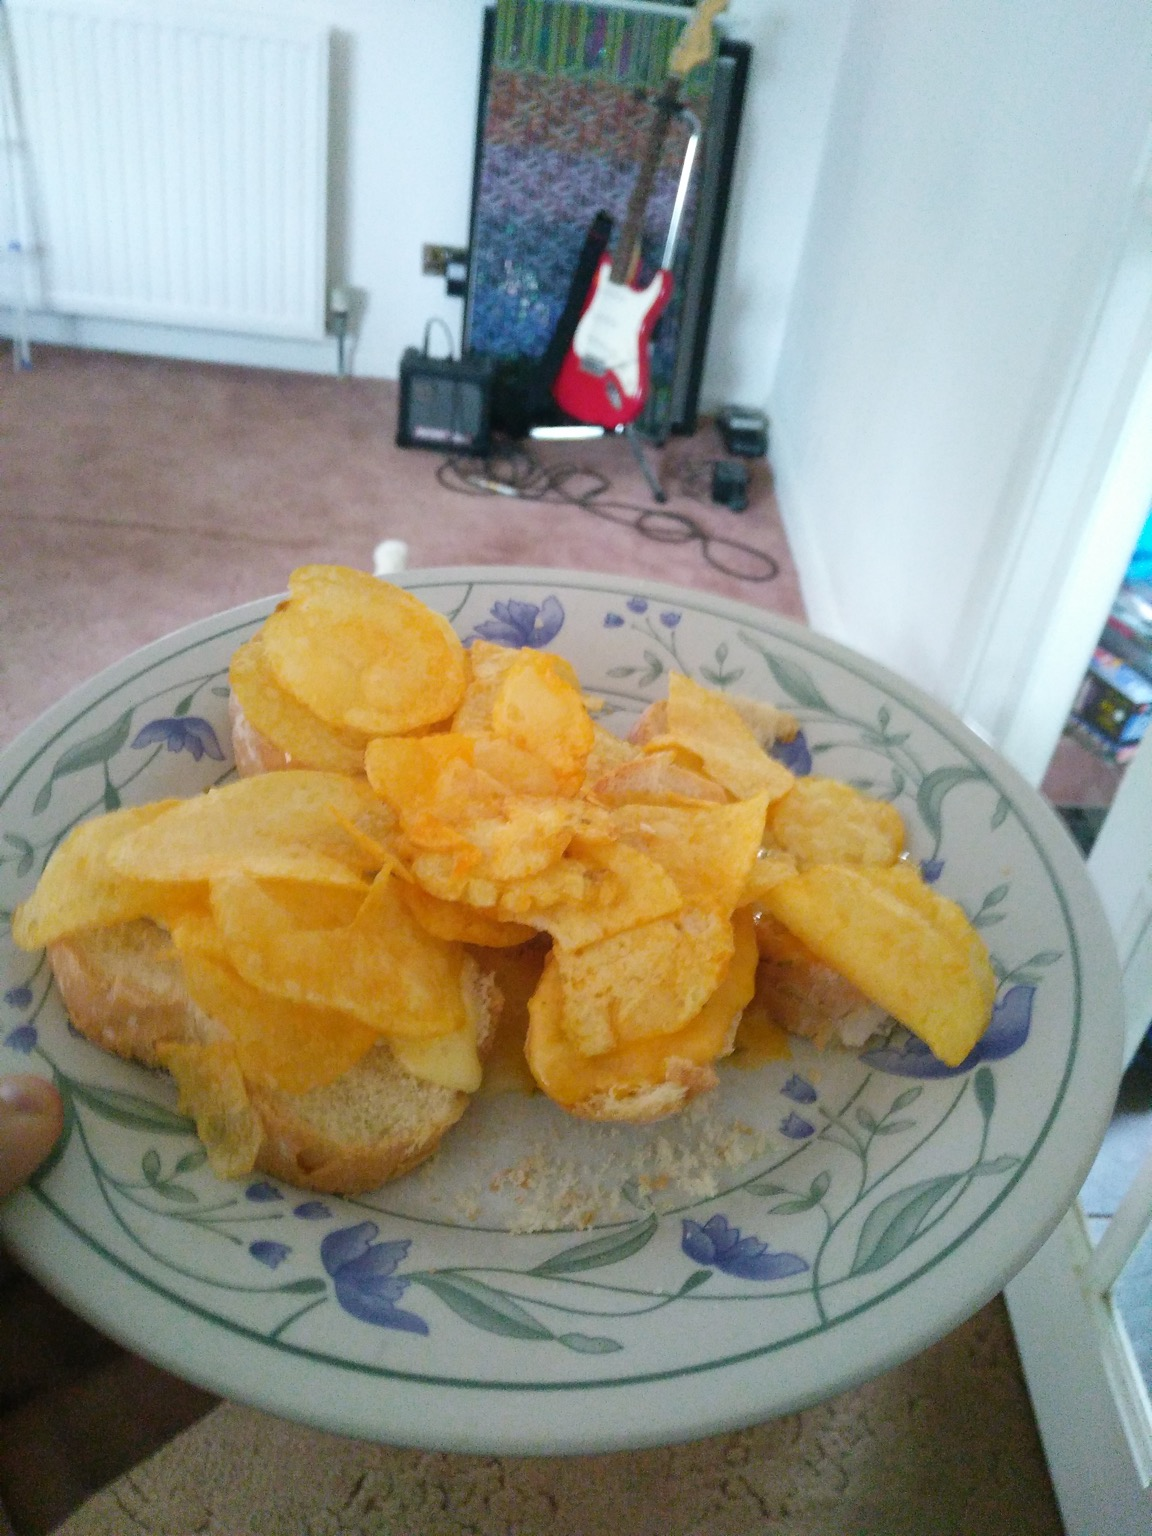 Crisps on white bread approaching a guitar